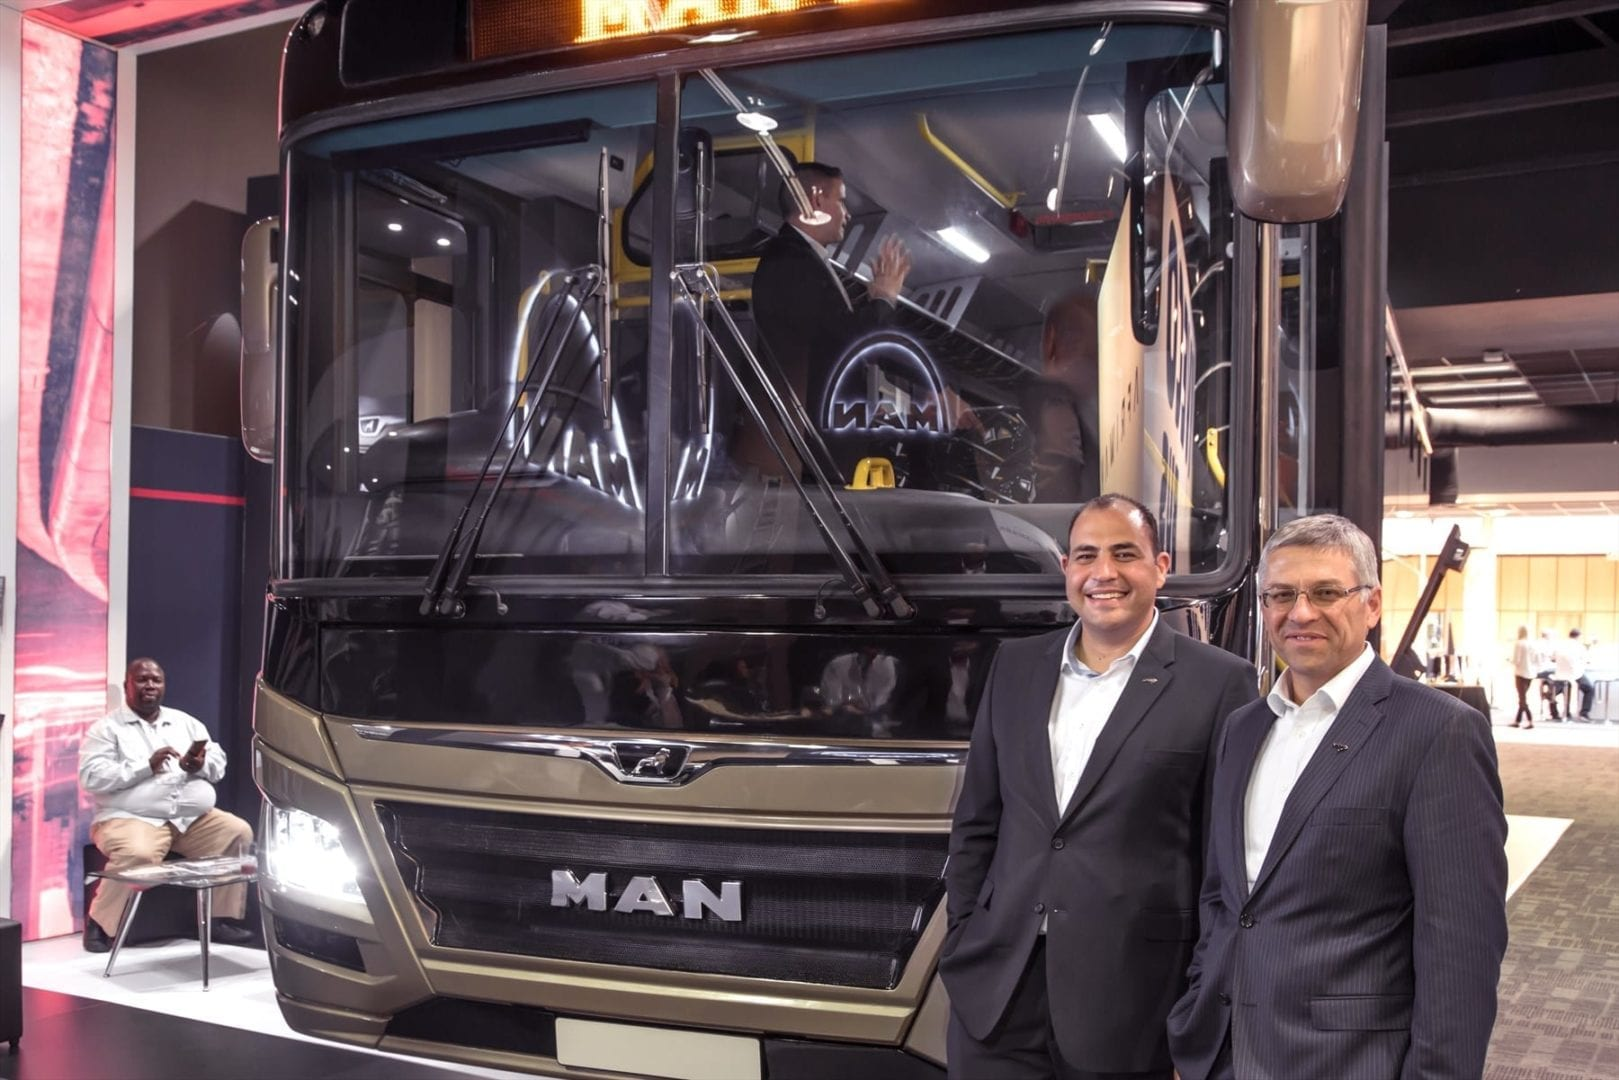 MAN Automotive launched its new commuter bus at this year's SABOA conference.